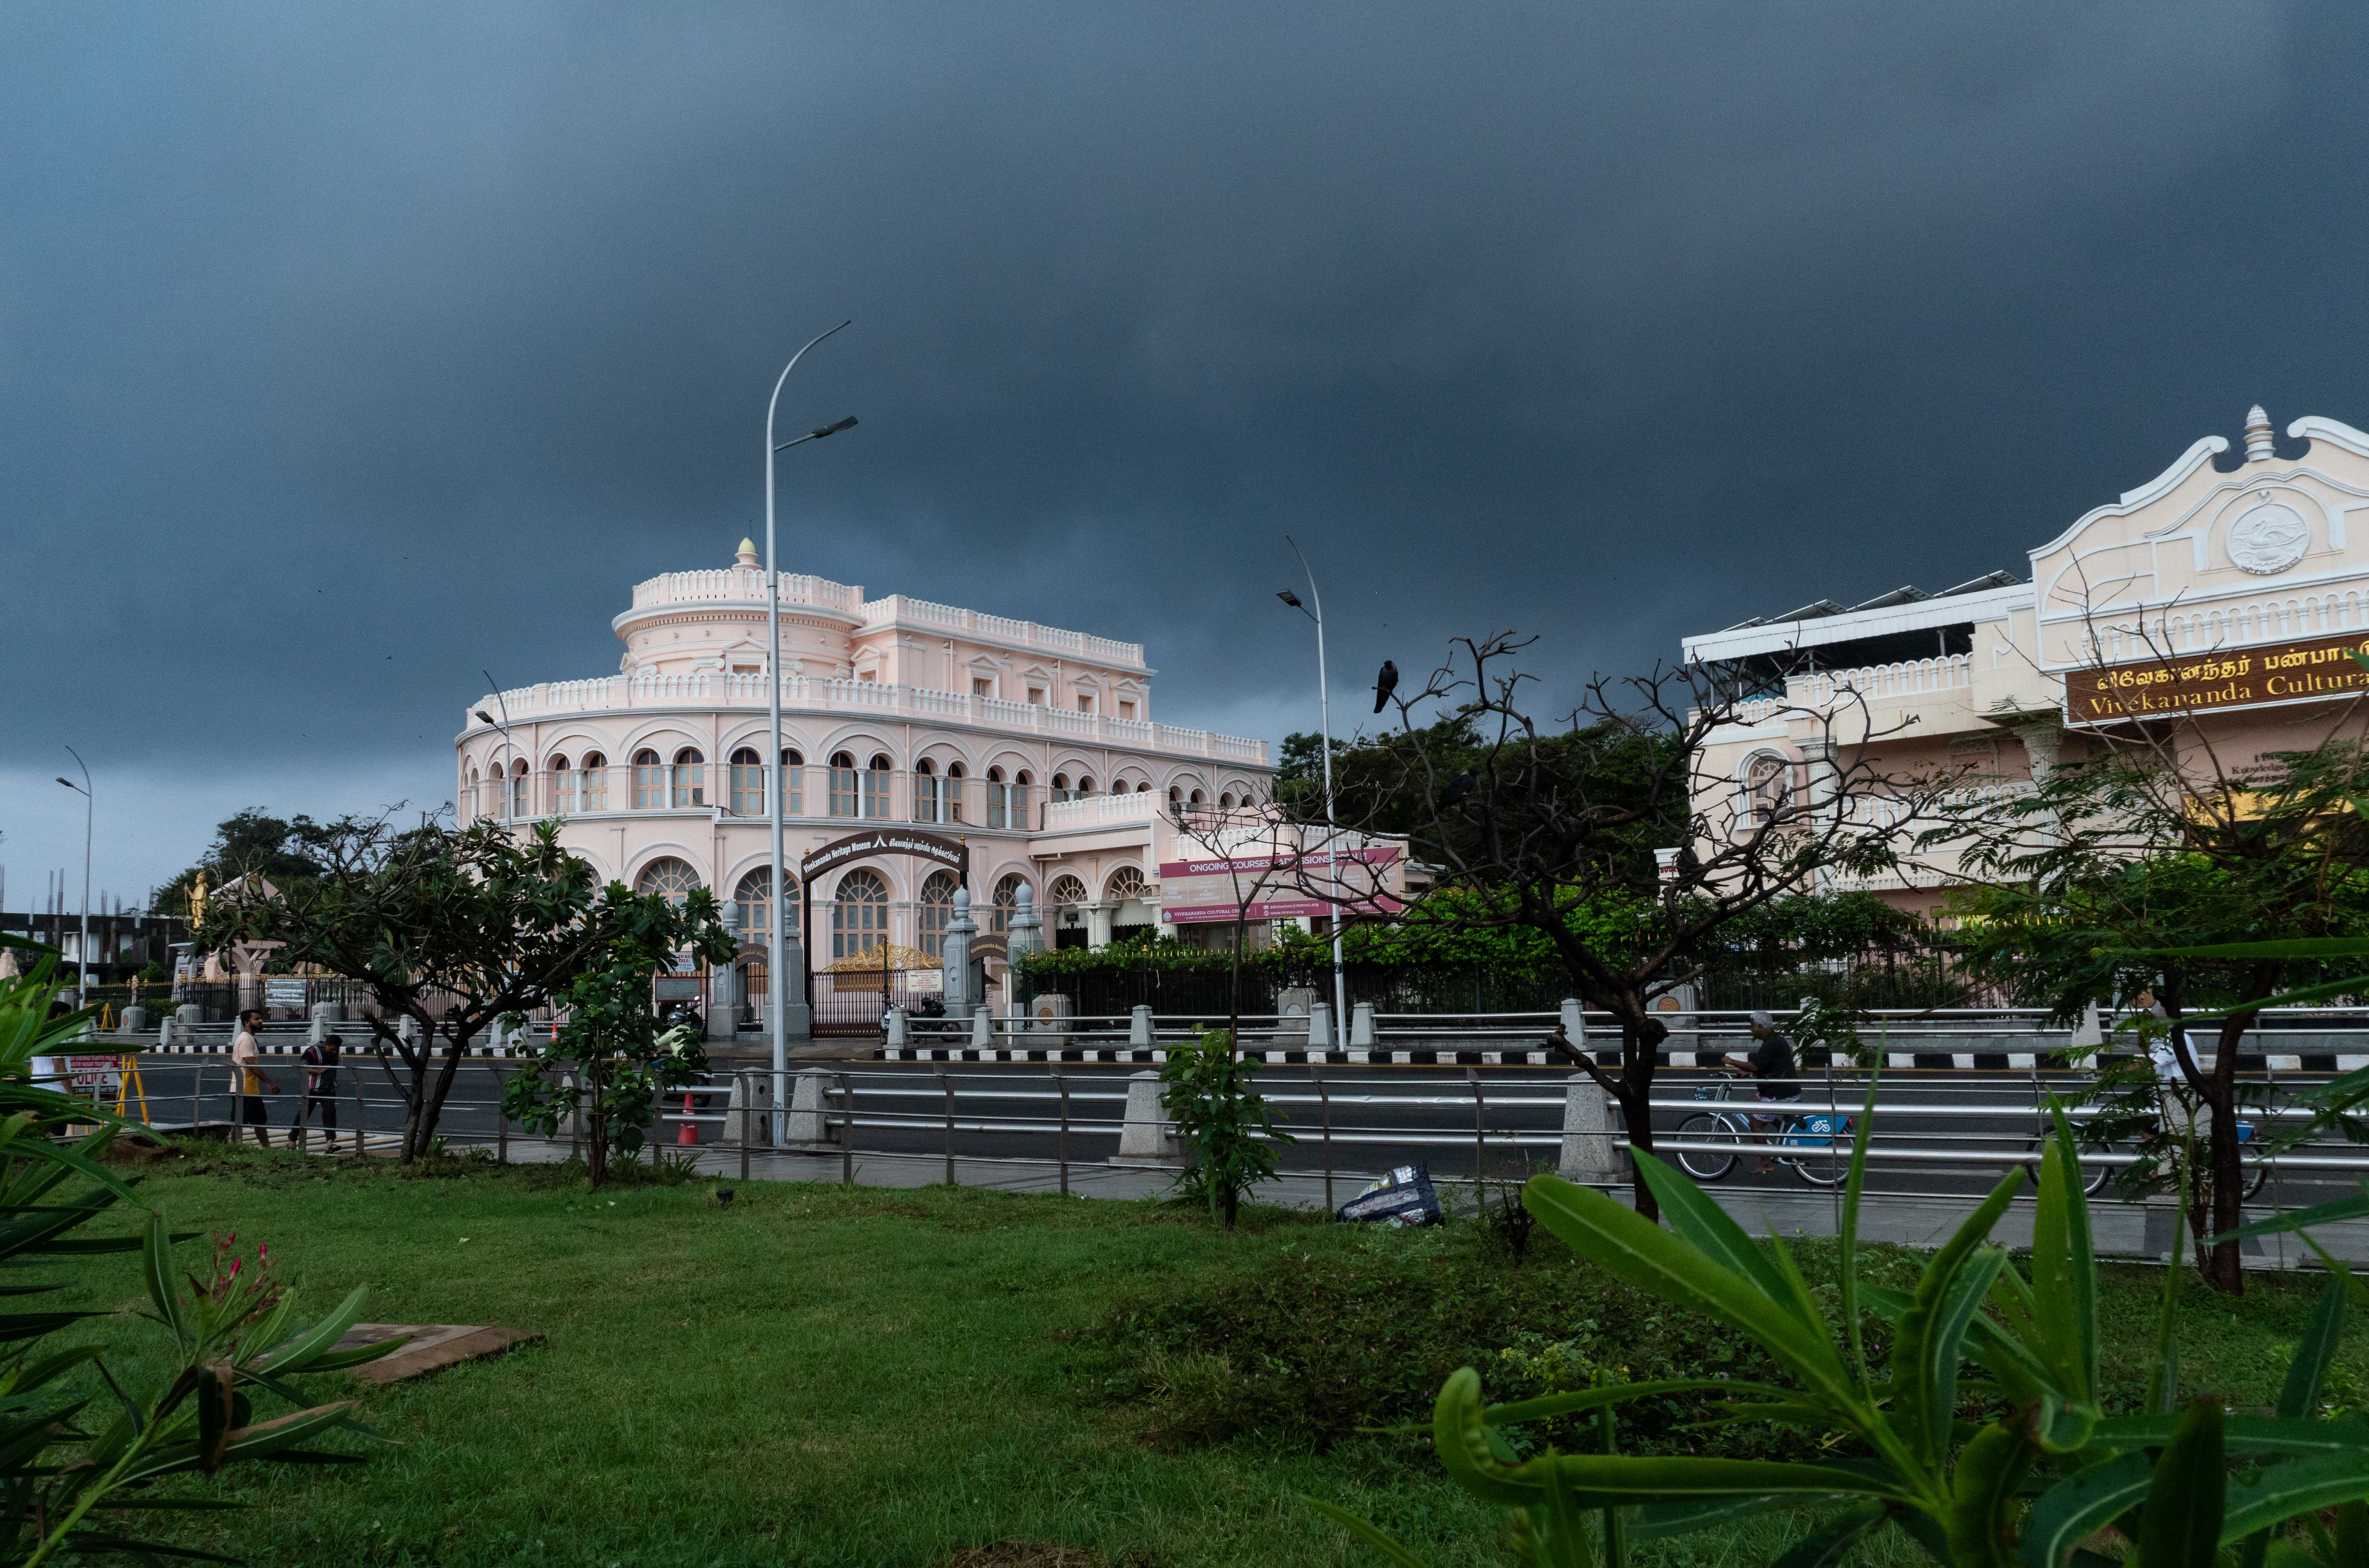 Cultural place in Monsoon